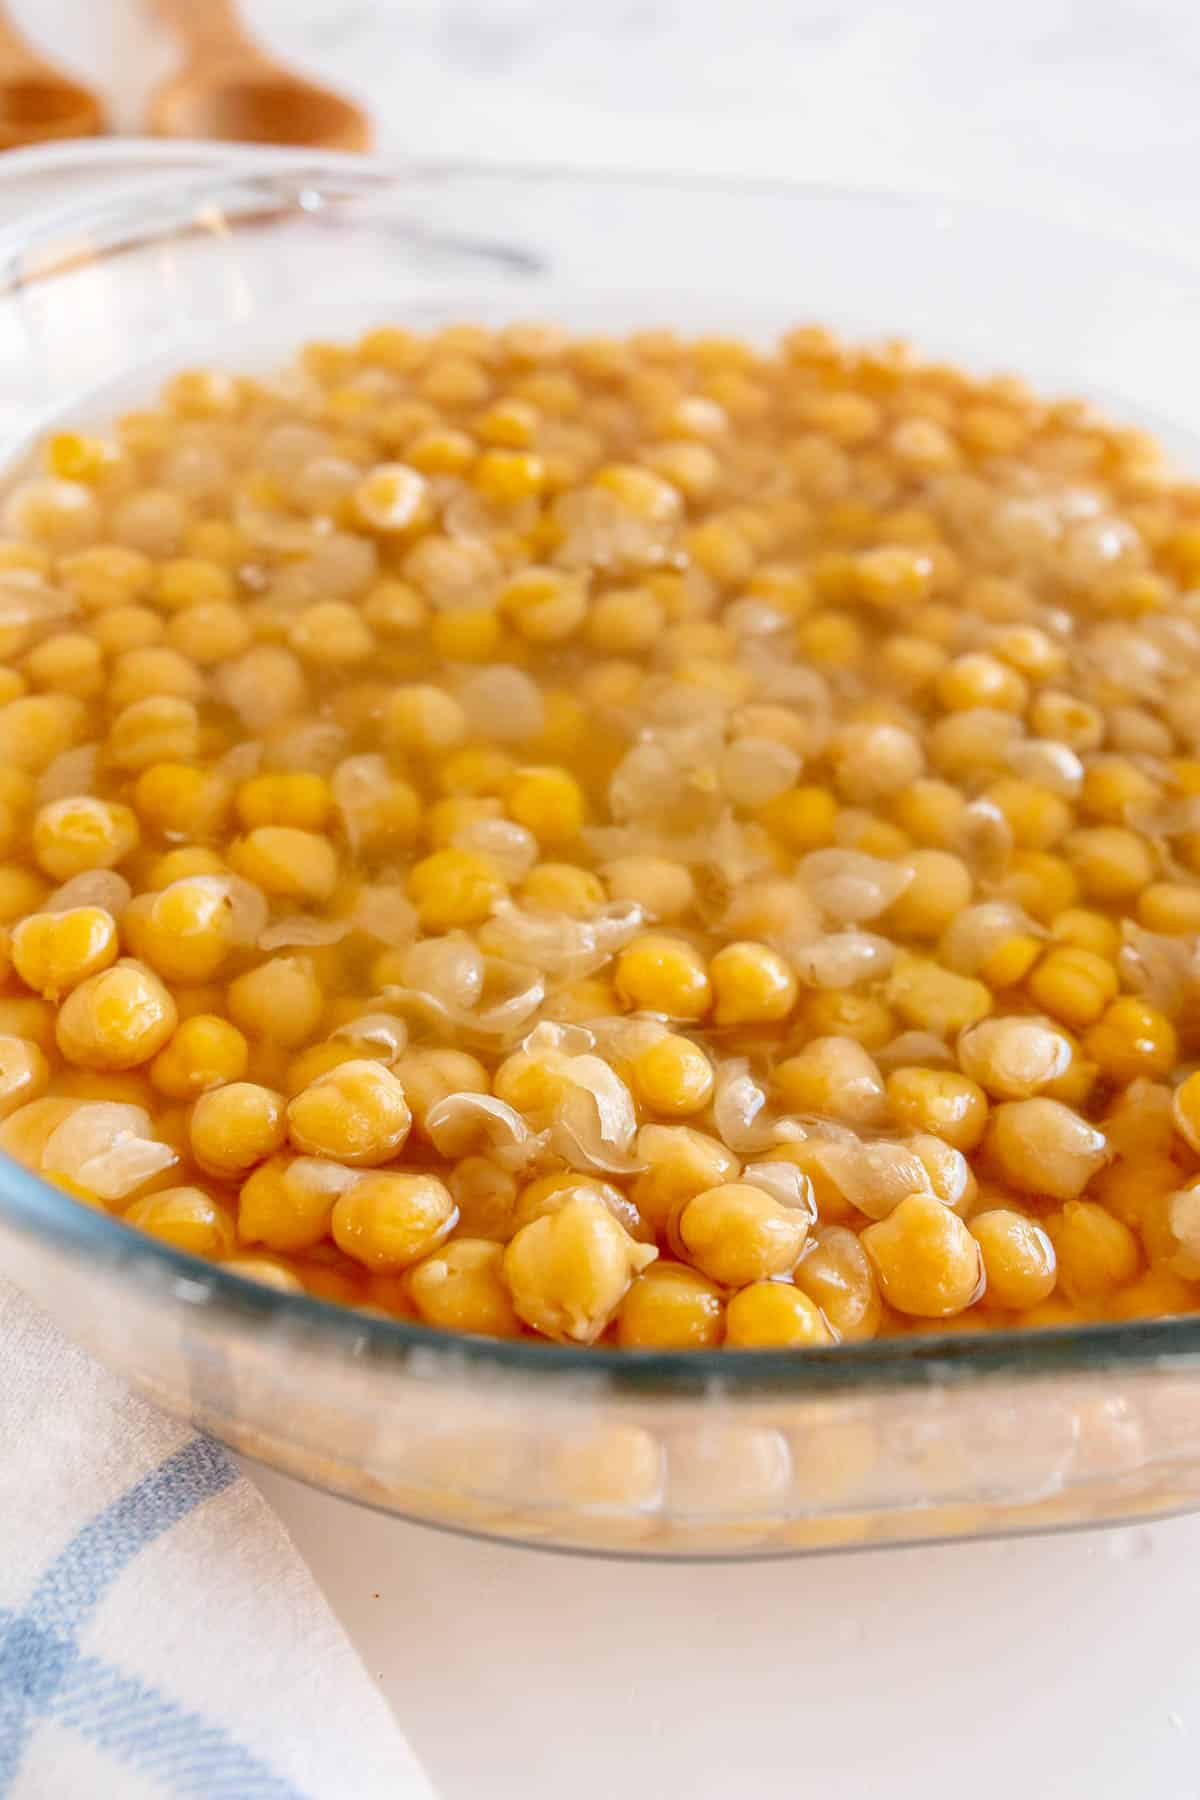 bowl of shelled chickpeas